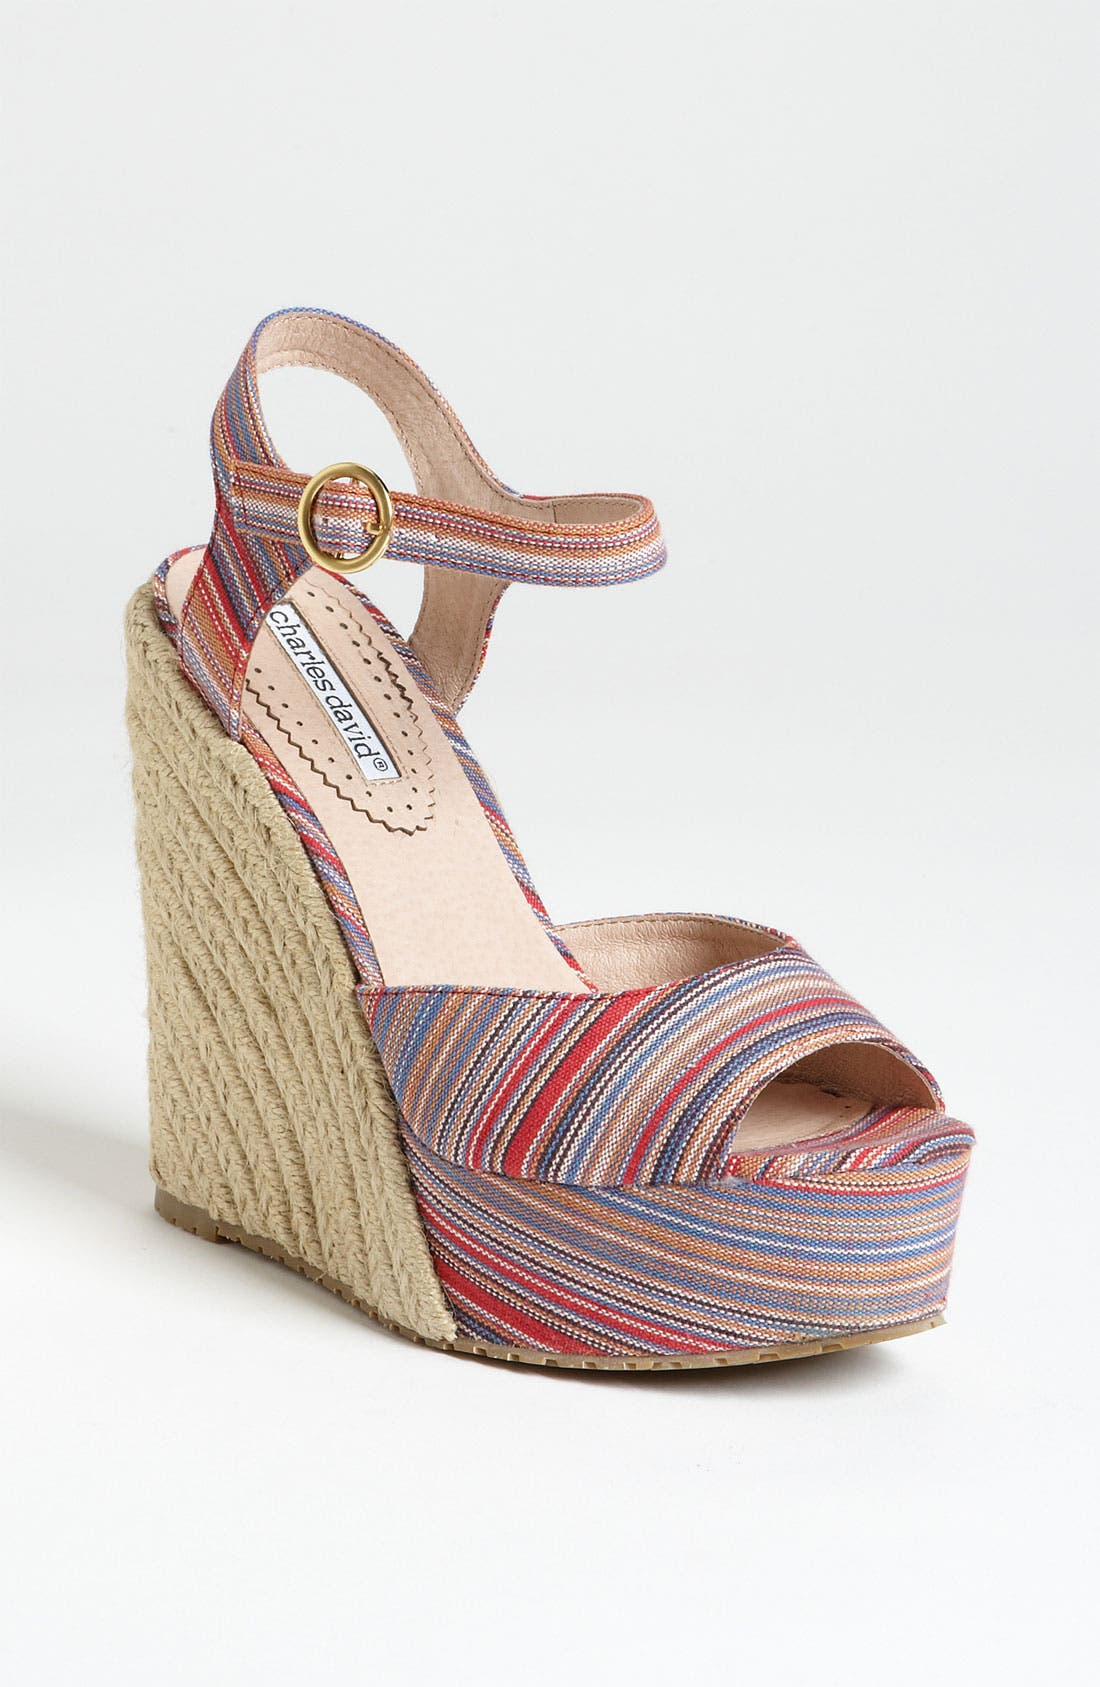 Alternate Image 1 Selected - Charles David 'Baja' Sandal